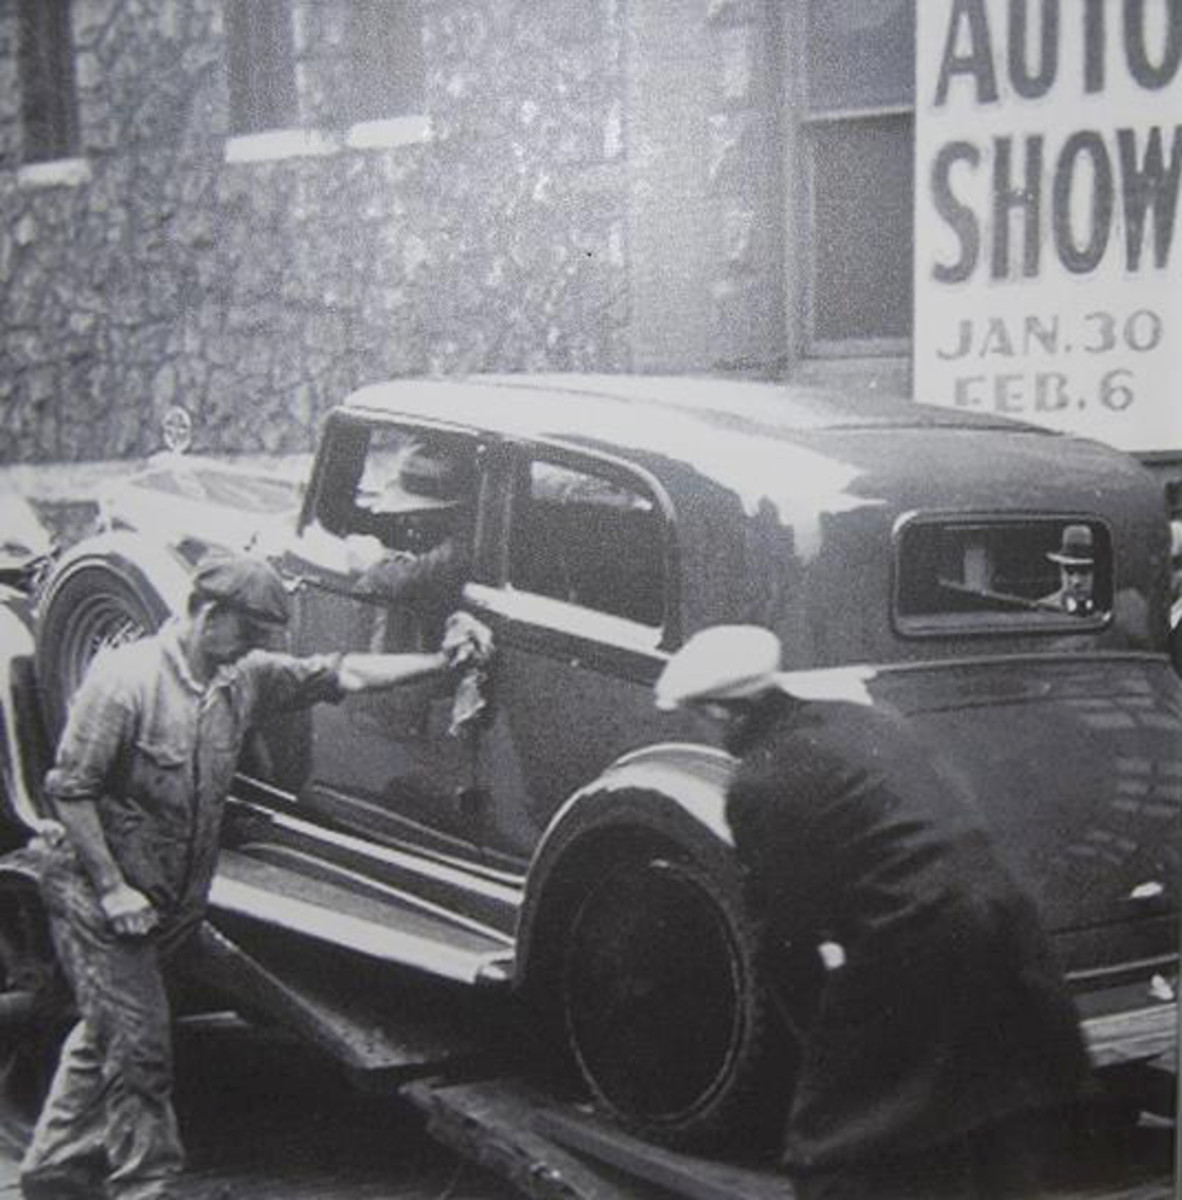 One feature of the 107th Chicago Auto Show was a glimpse at its past.